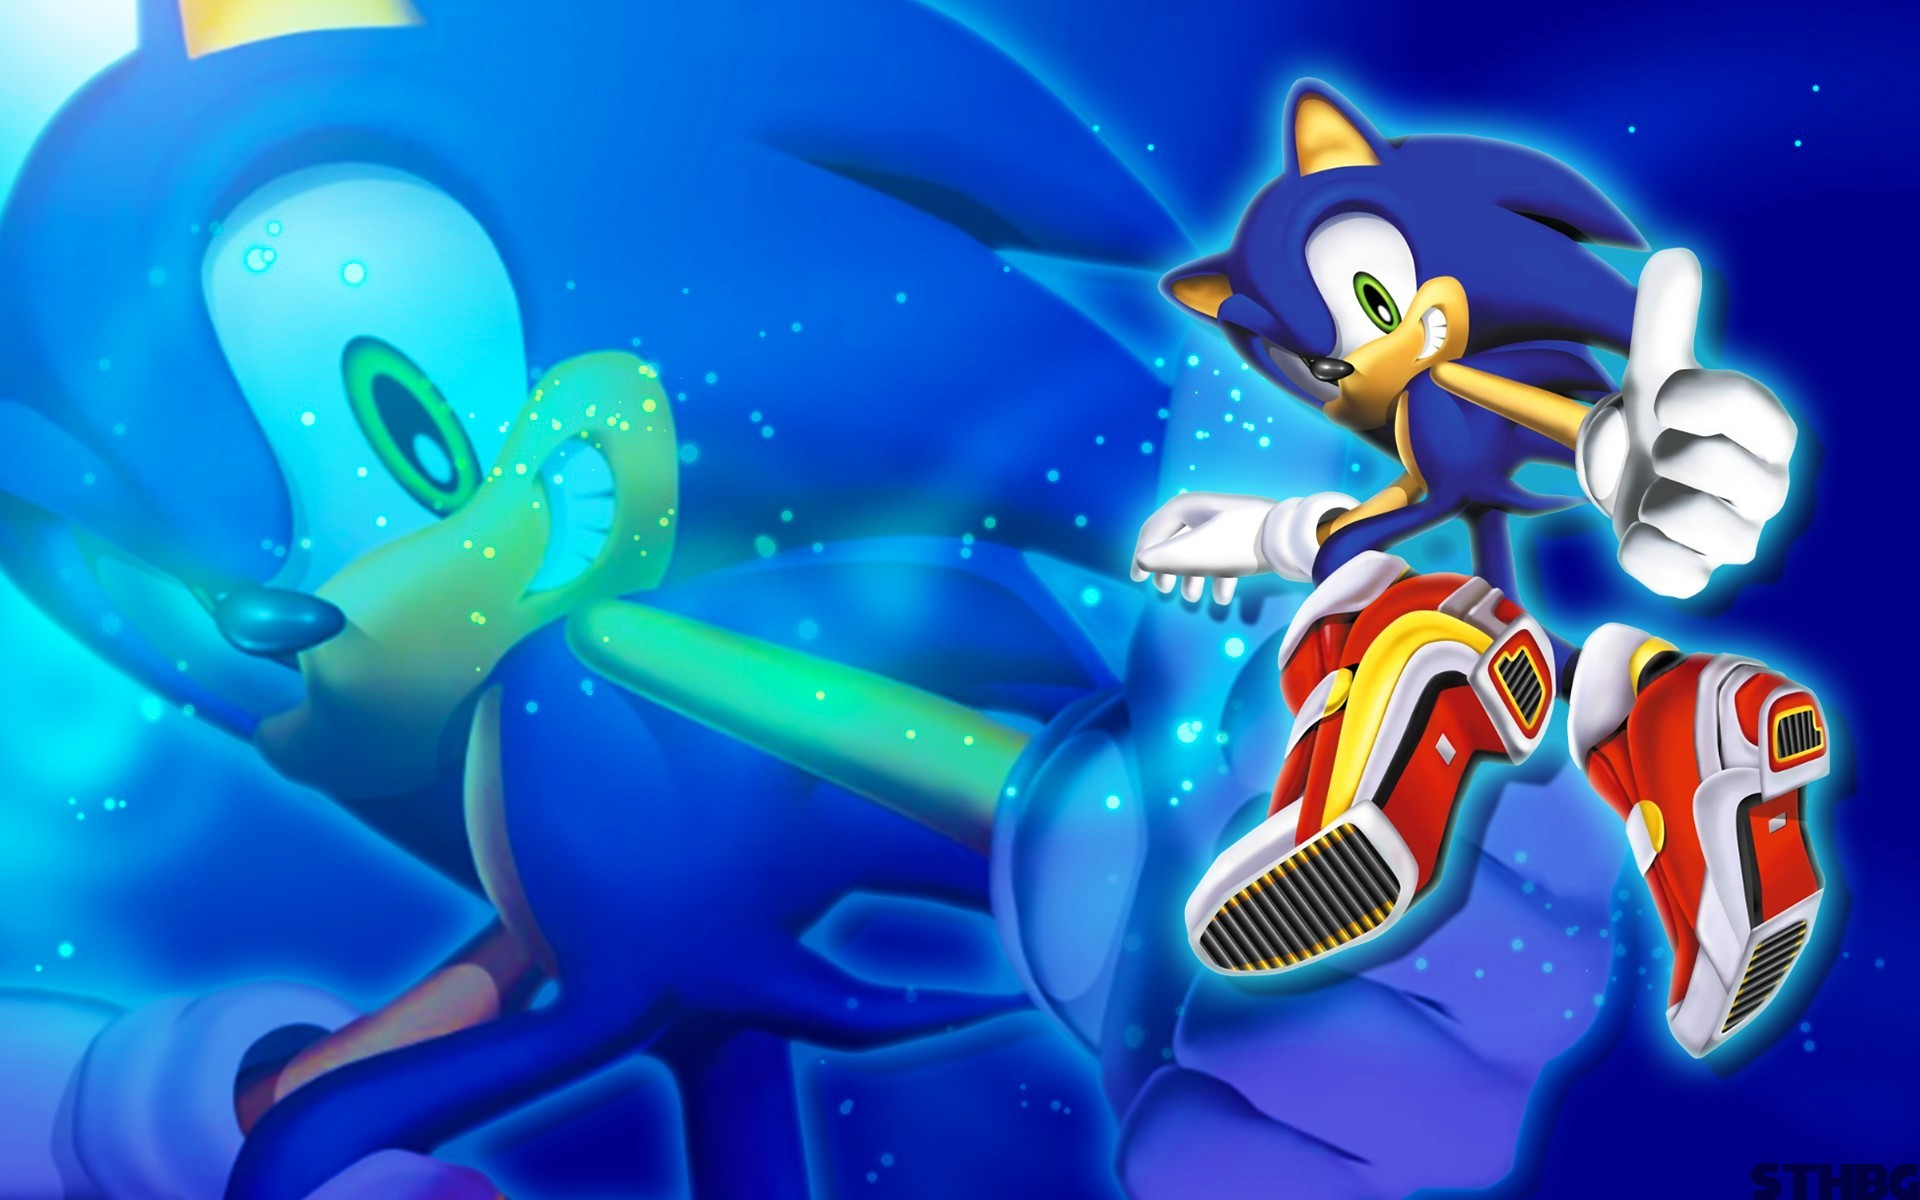 1920x1200 Video Game - Sonic Adventure 2 Sonic the Hedgehog Wallpaper